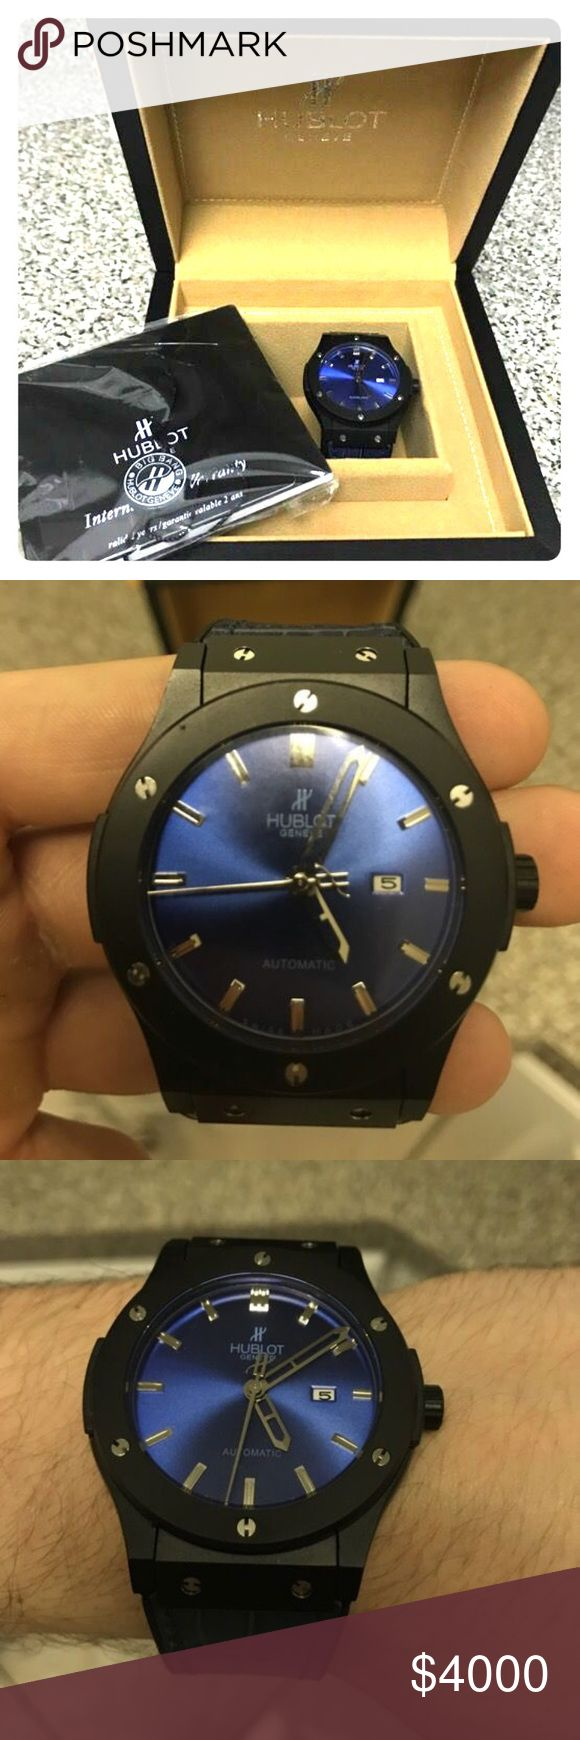 HUBLOT WATCH FOR SALE LOW PRICE$ Hublot watch for sale. All the features are in a pic posted with this post. Worn twice and need It gone asap. $7,000 watch for low pricing. PRICE IS NEGOTIABLE !!!! (Just in case you are wondering why I'm selling a watch for this cheap is because of school purposes and i need the money) Hublot Accessories Watches